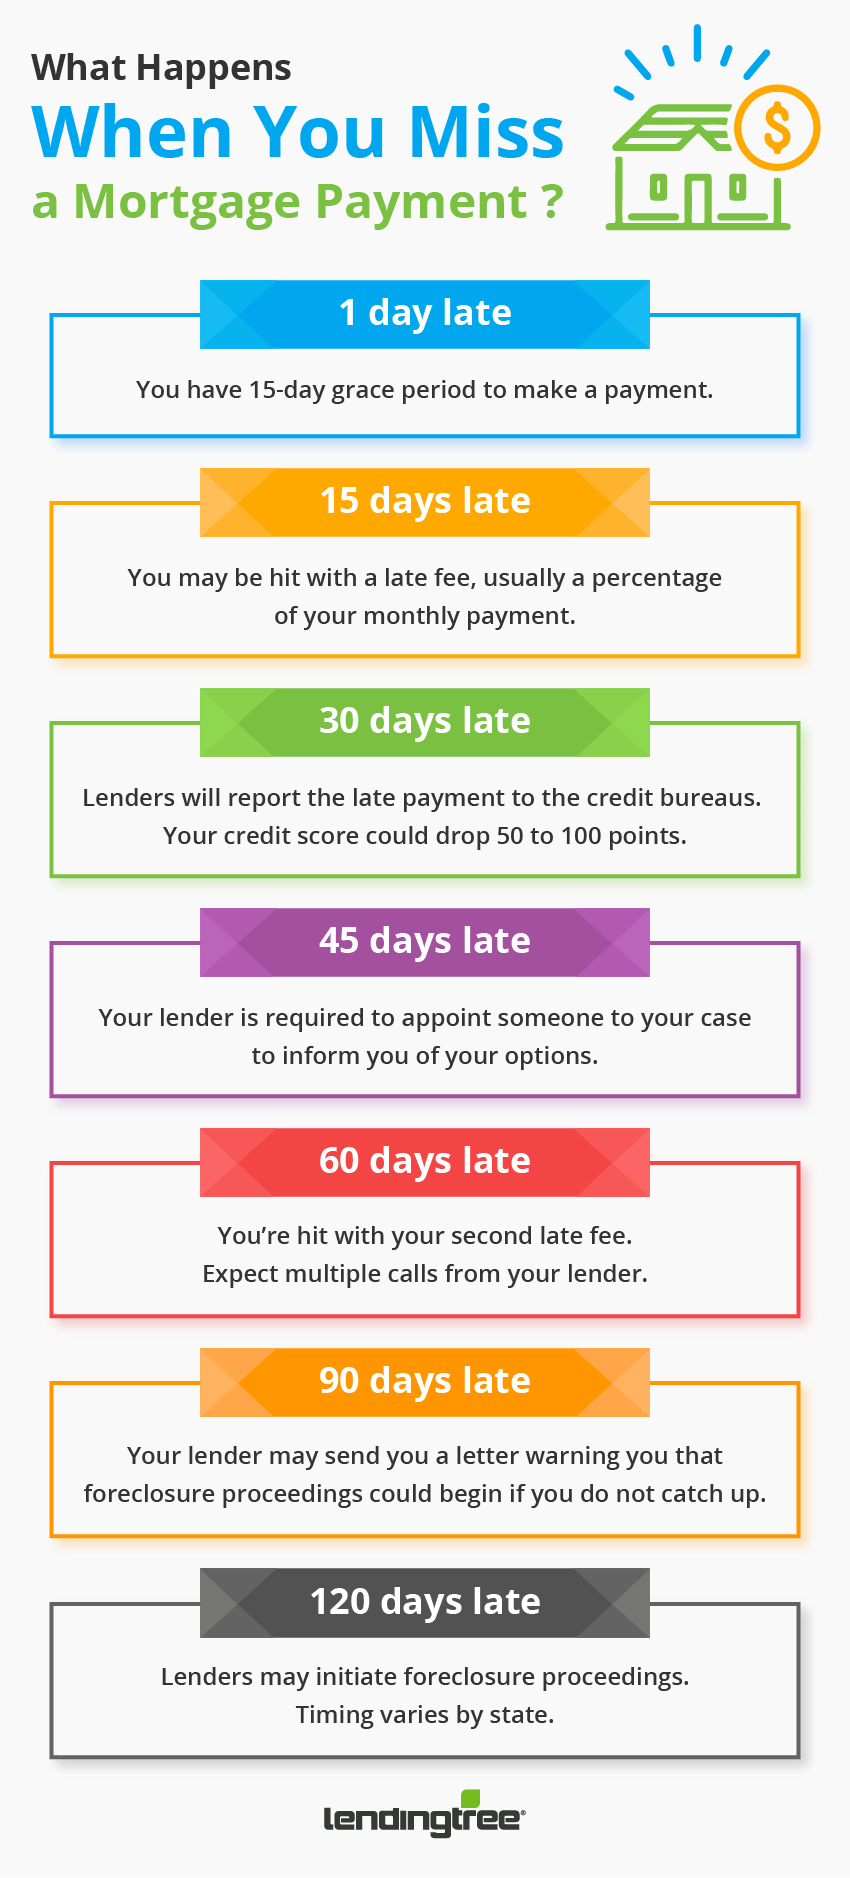 When is your mortgage payment late? | LendingTree